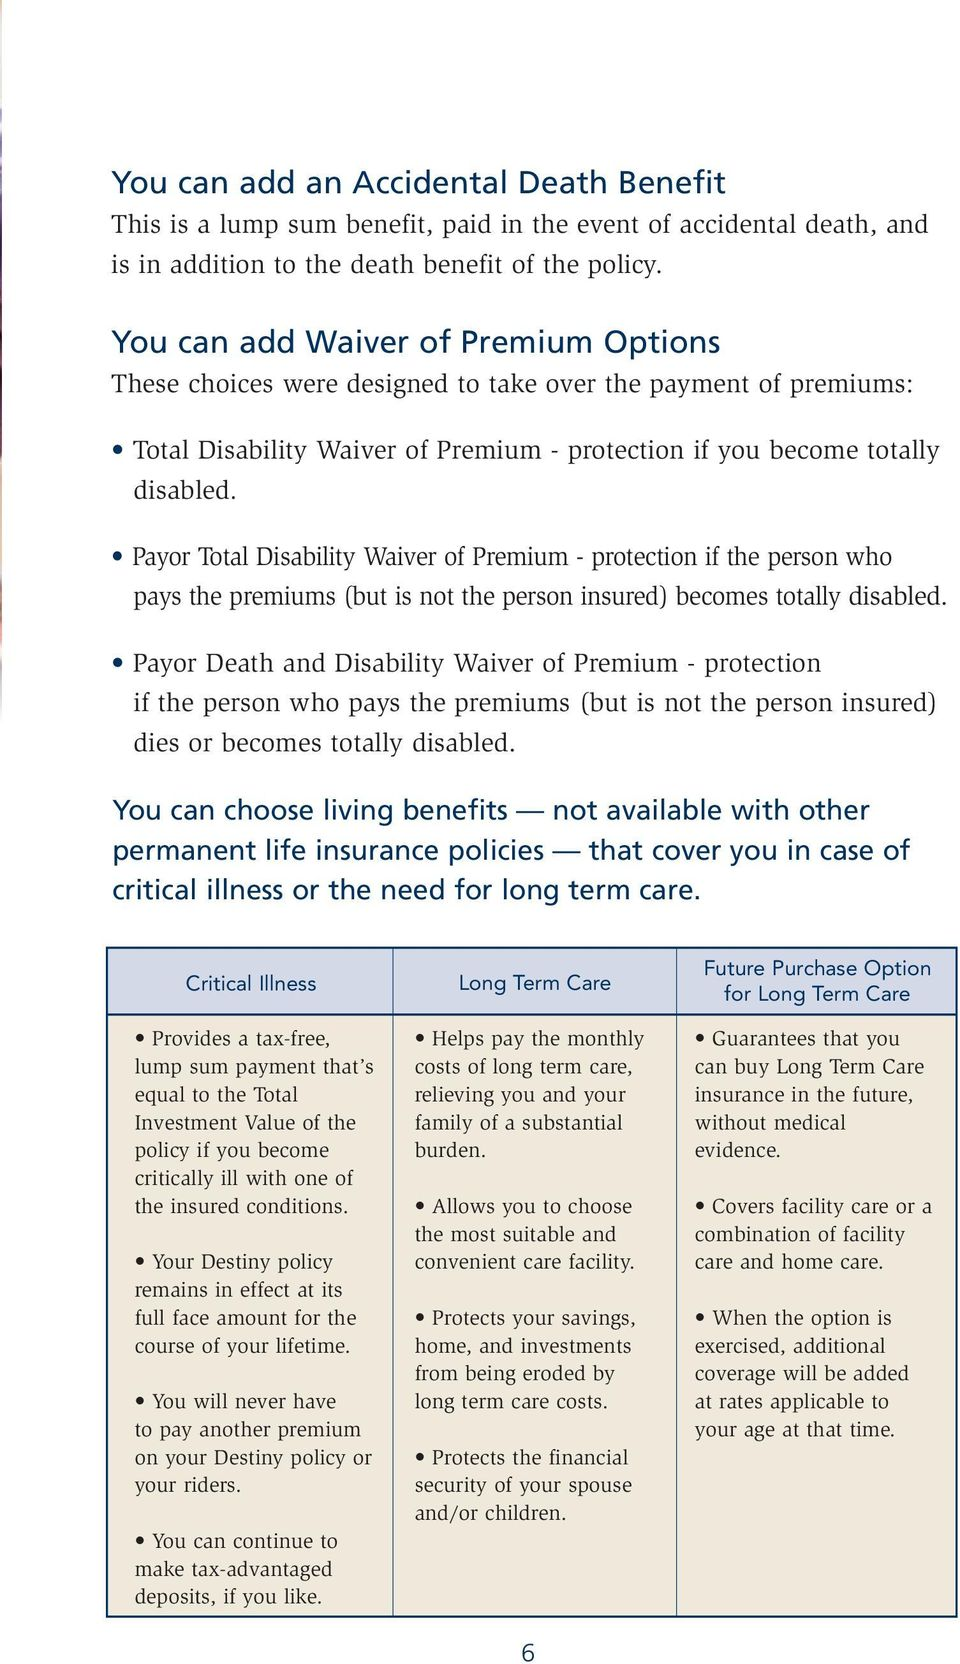 Payor Total Disability Waiver of Premium - protection if the person who pays the premiums (but is not the person insured) becomes totally disabled.